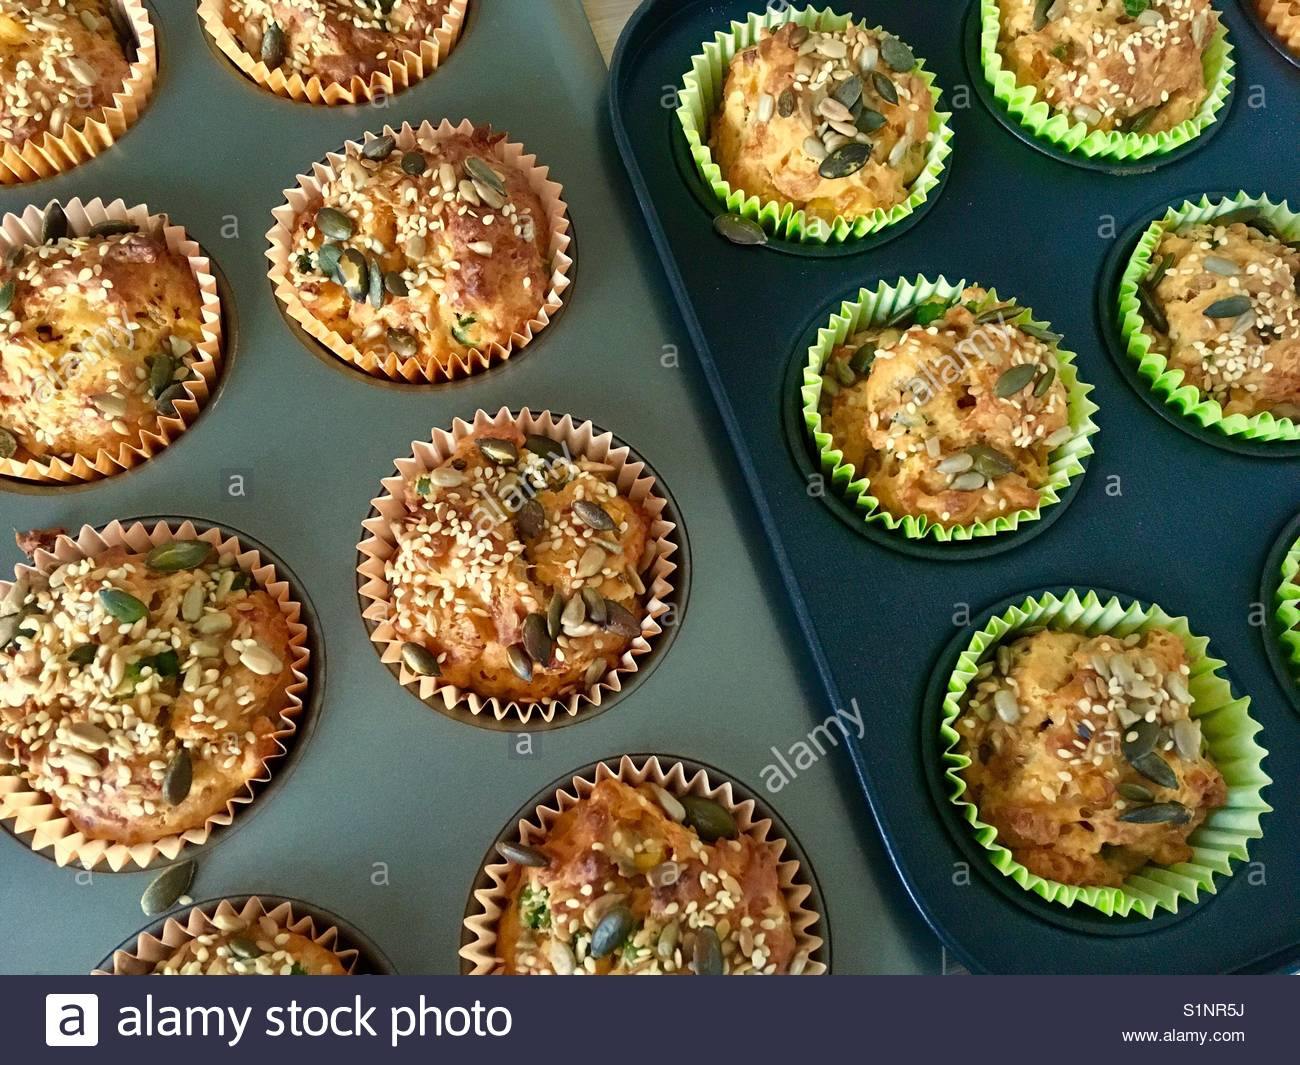 Home made savoury muffins topped with seeds - Stock Image